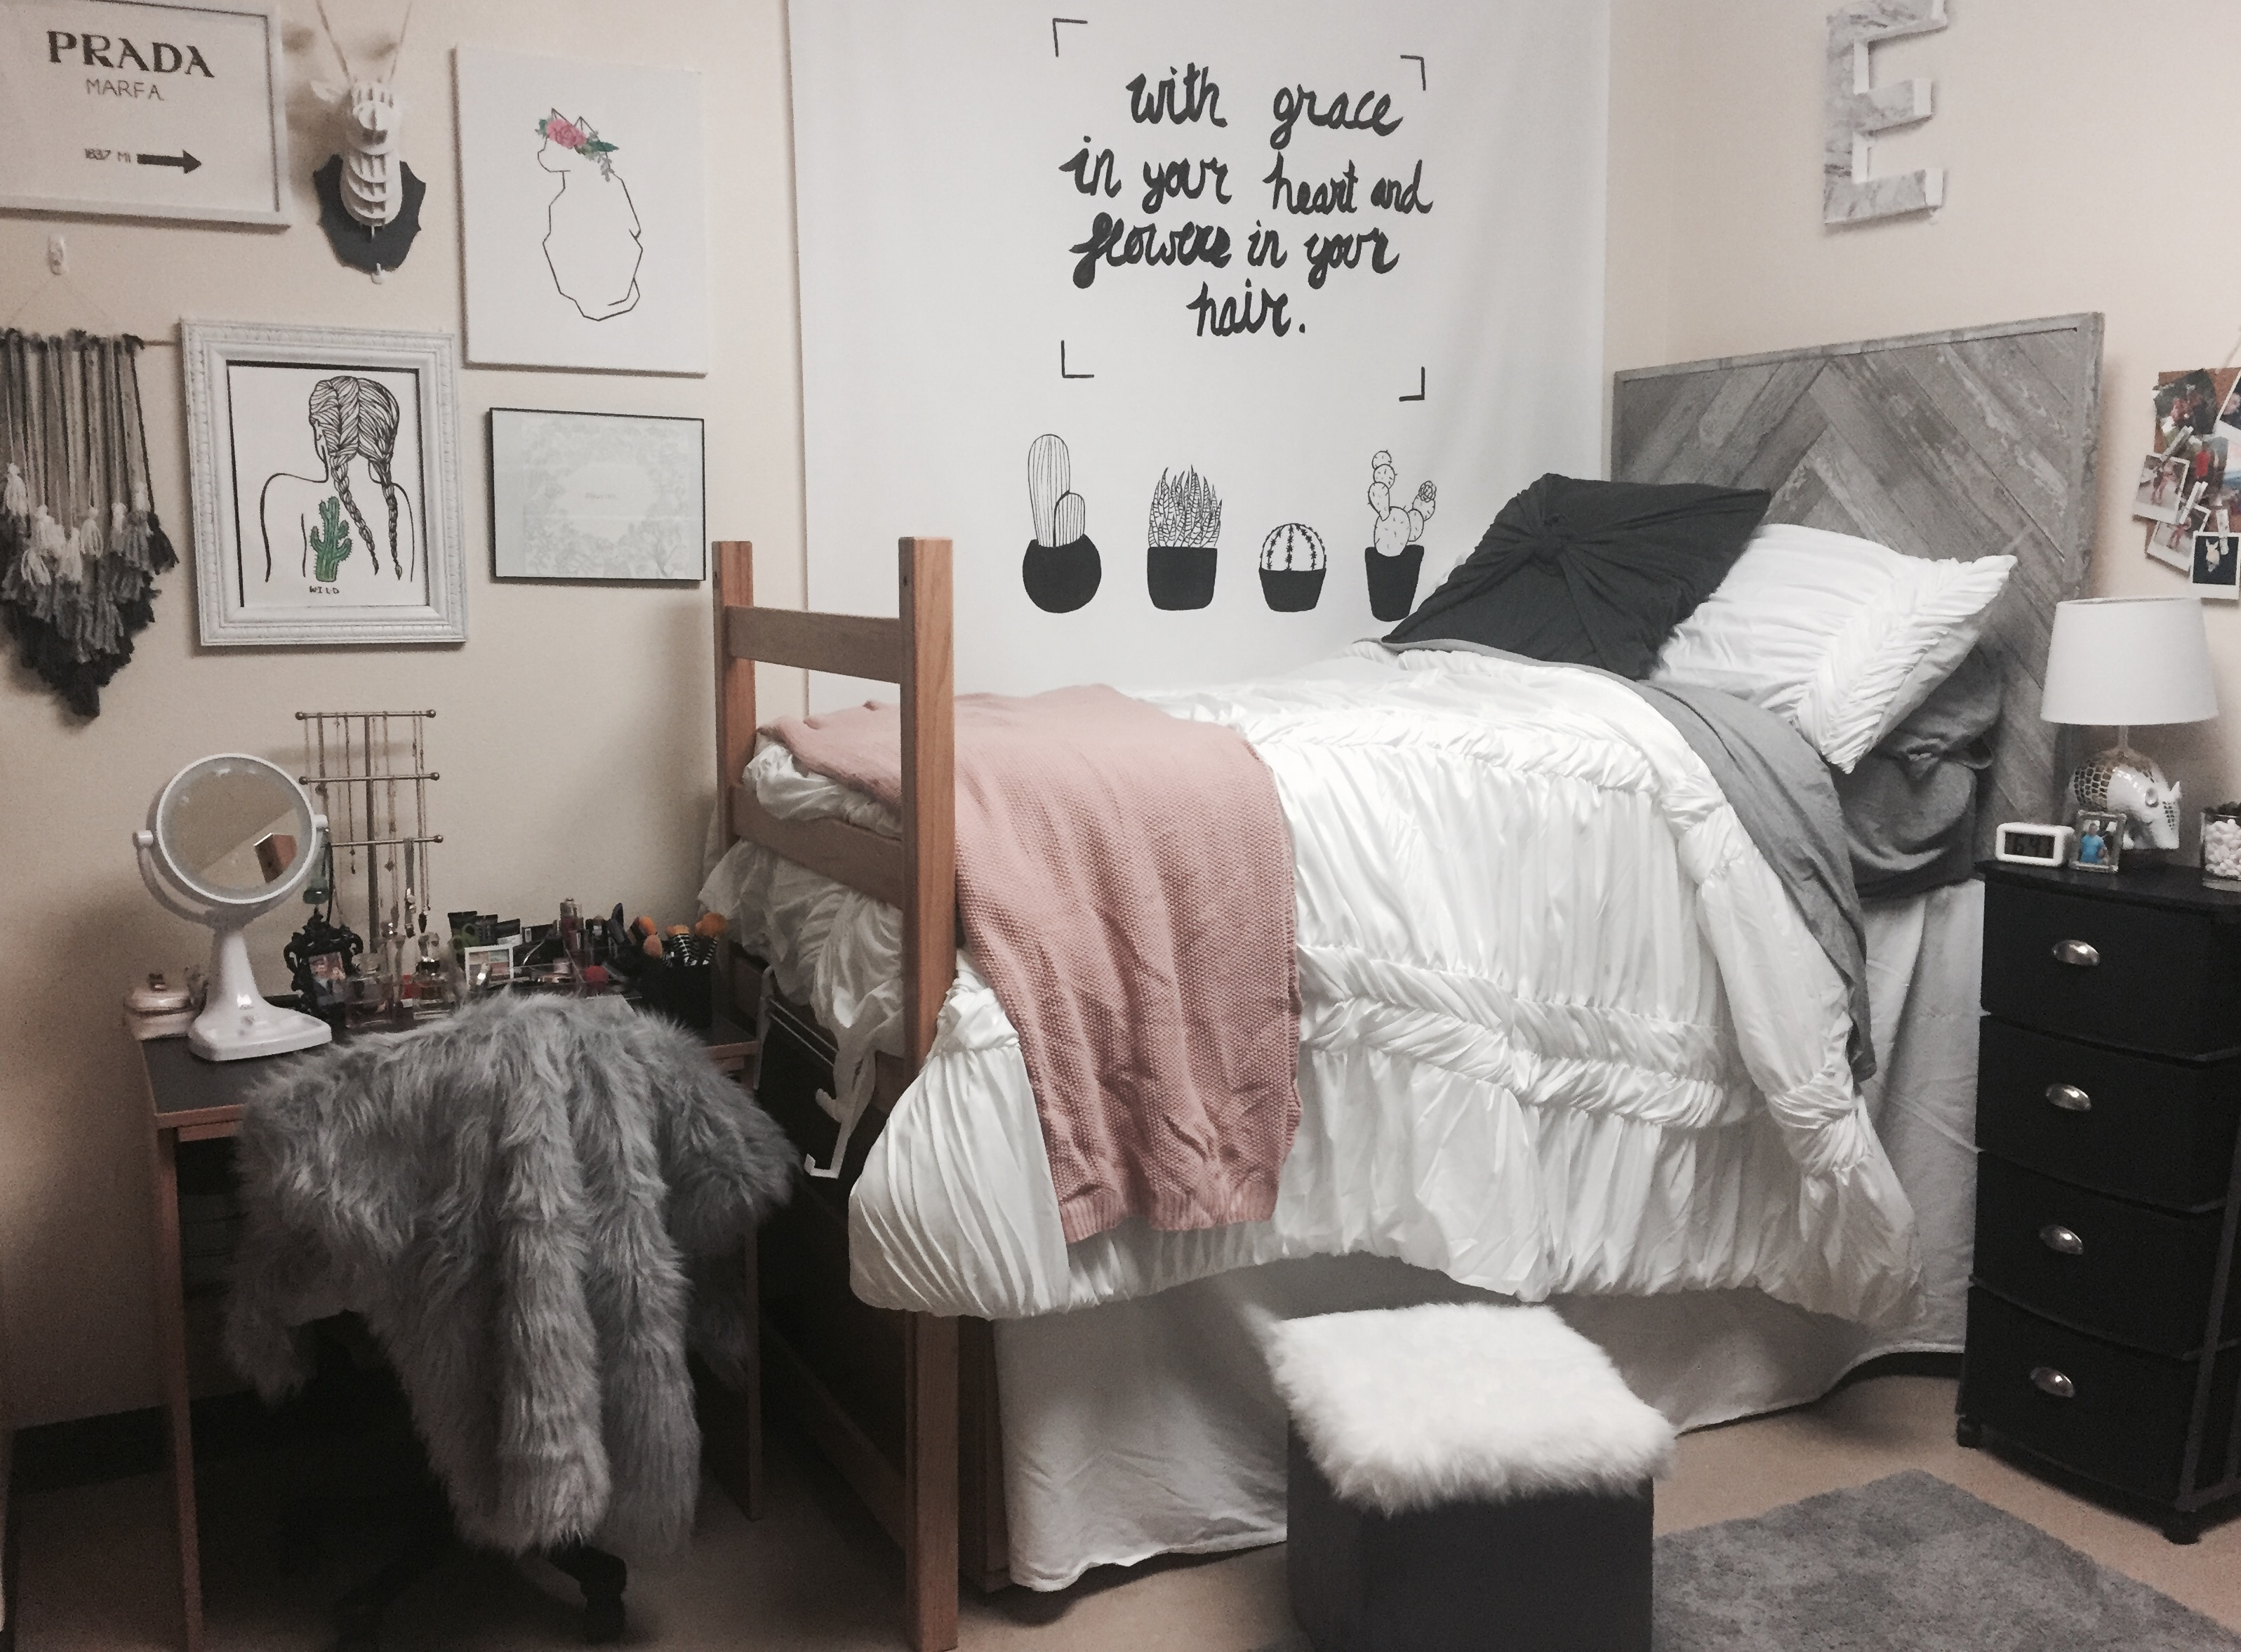 Design Dorm Room Ideas creative dorm room ideas to make your space more cozy love me college ideas